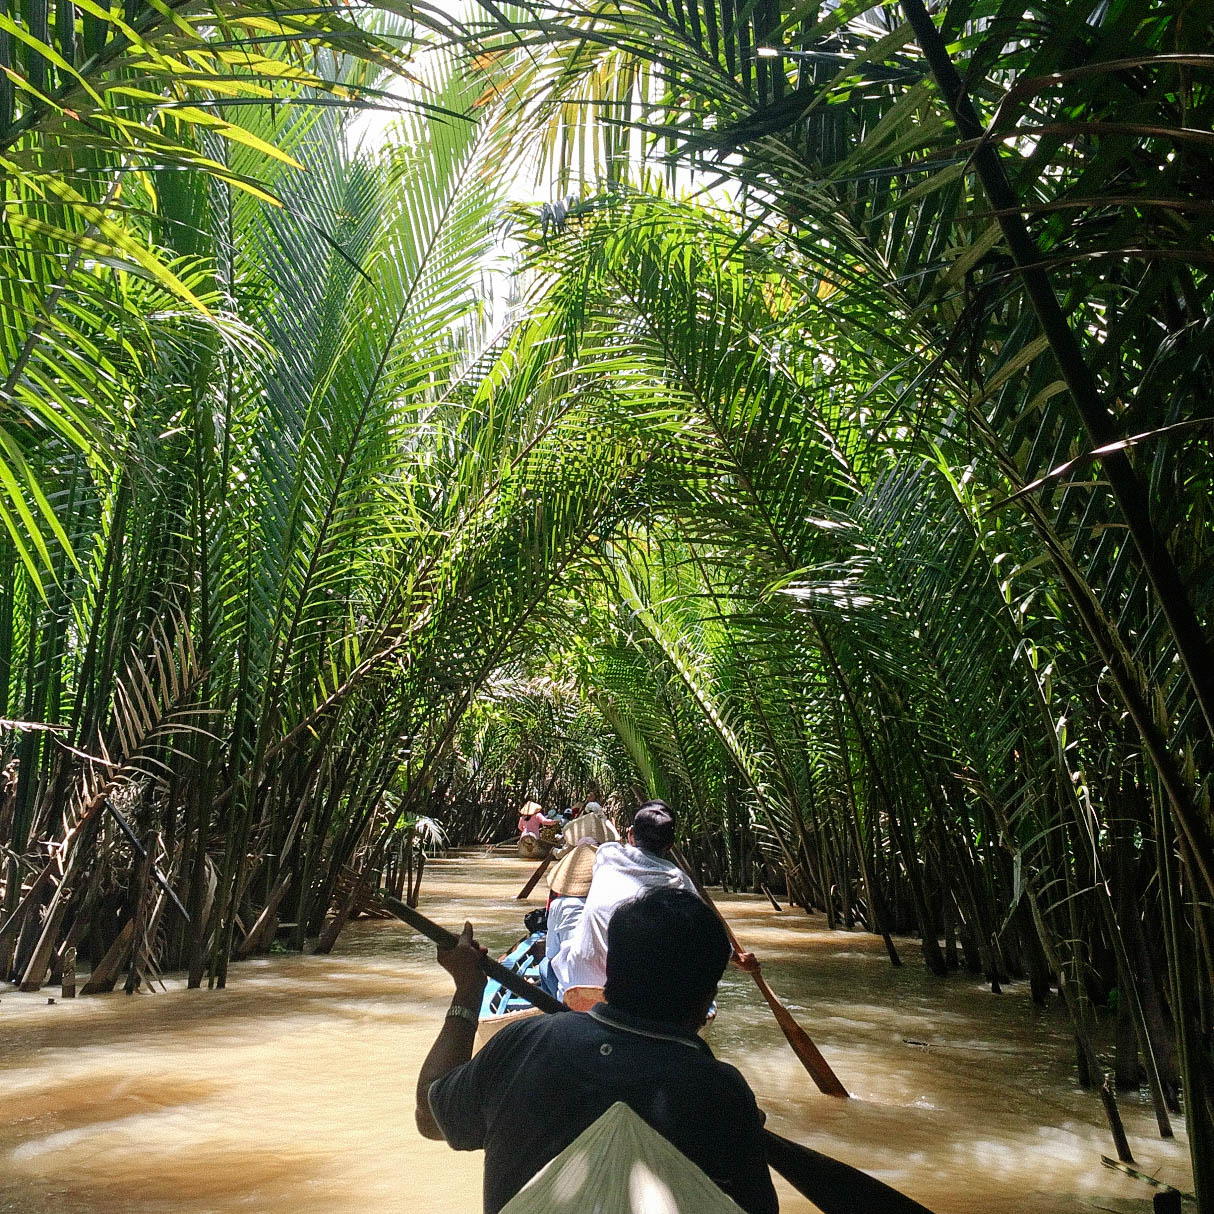 Mekong Delta tour. Photo provided by Andrea Javier